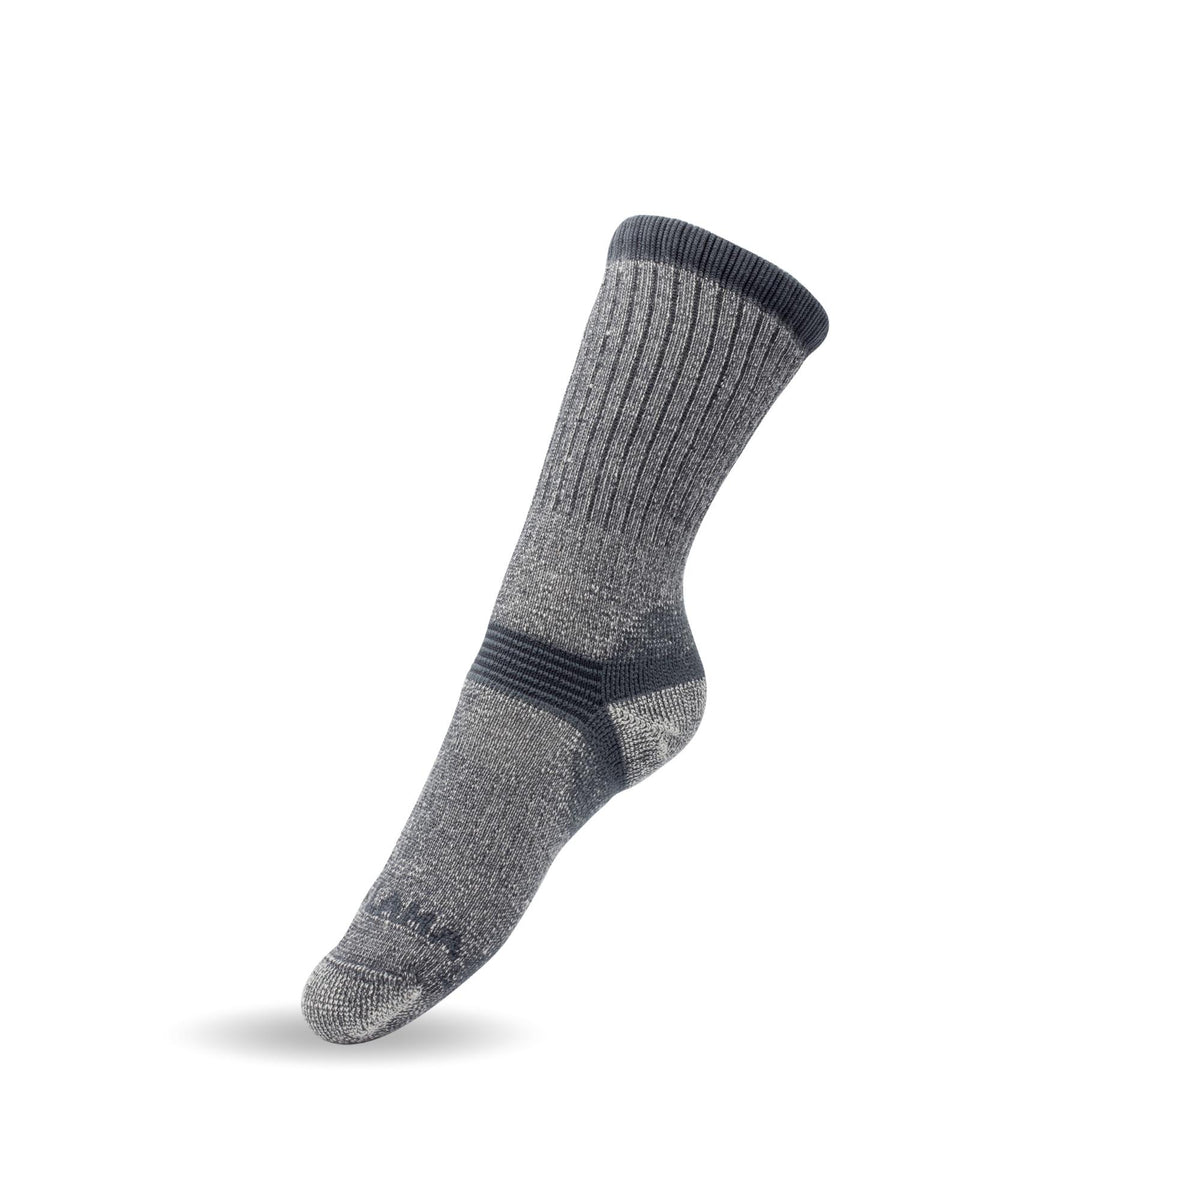 Merino Wool Socks Men - Black & Dark Gray